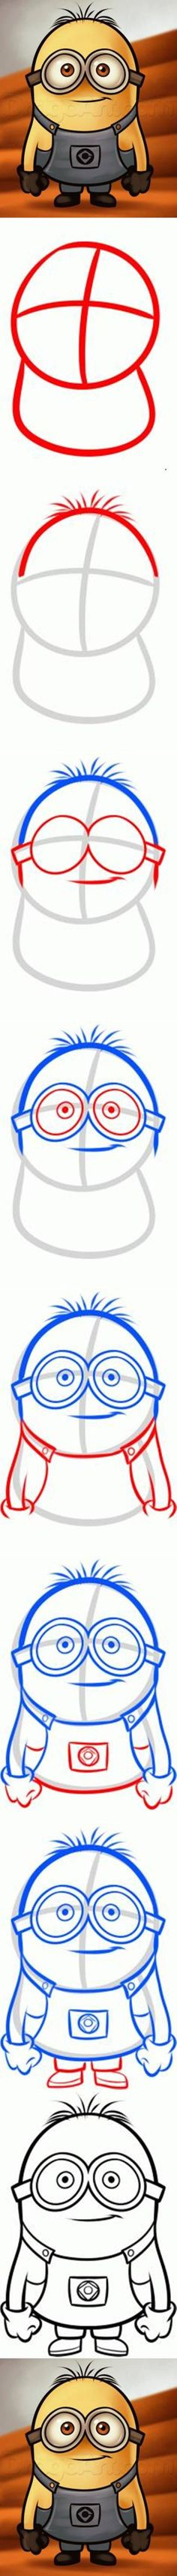 DIY Draw a Minion from Despicable Me